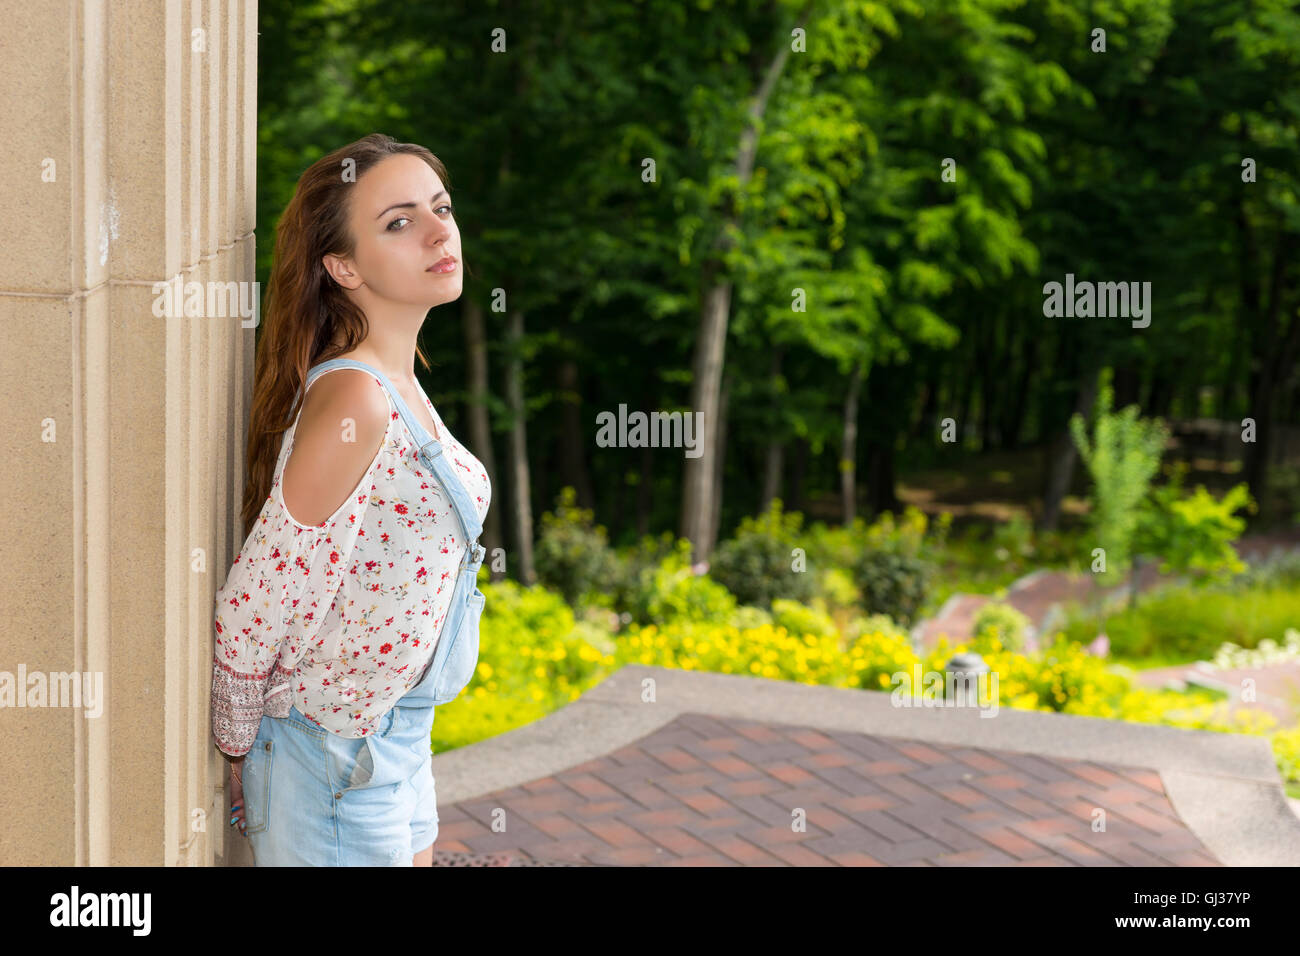 Pensive young adult woman standing near stone wall and looking into the camera outside facing trees in park or yard - Stock Image